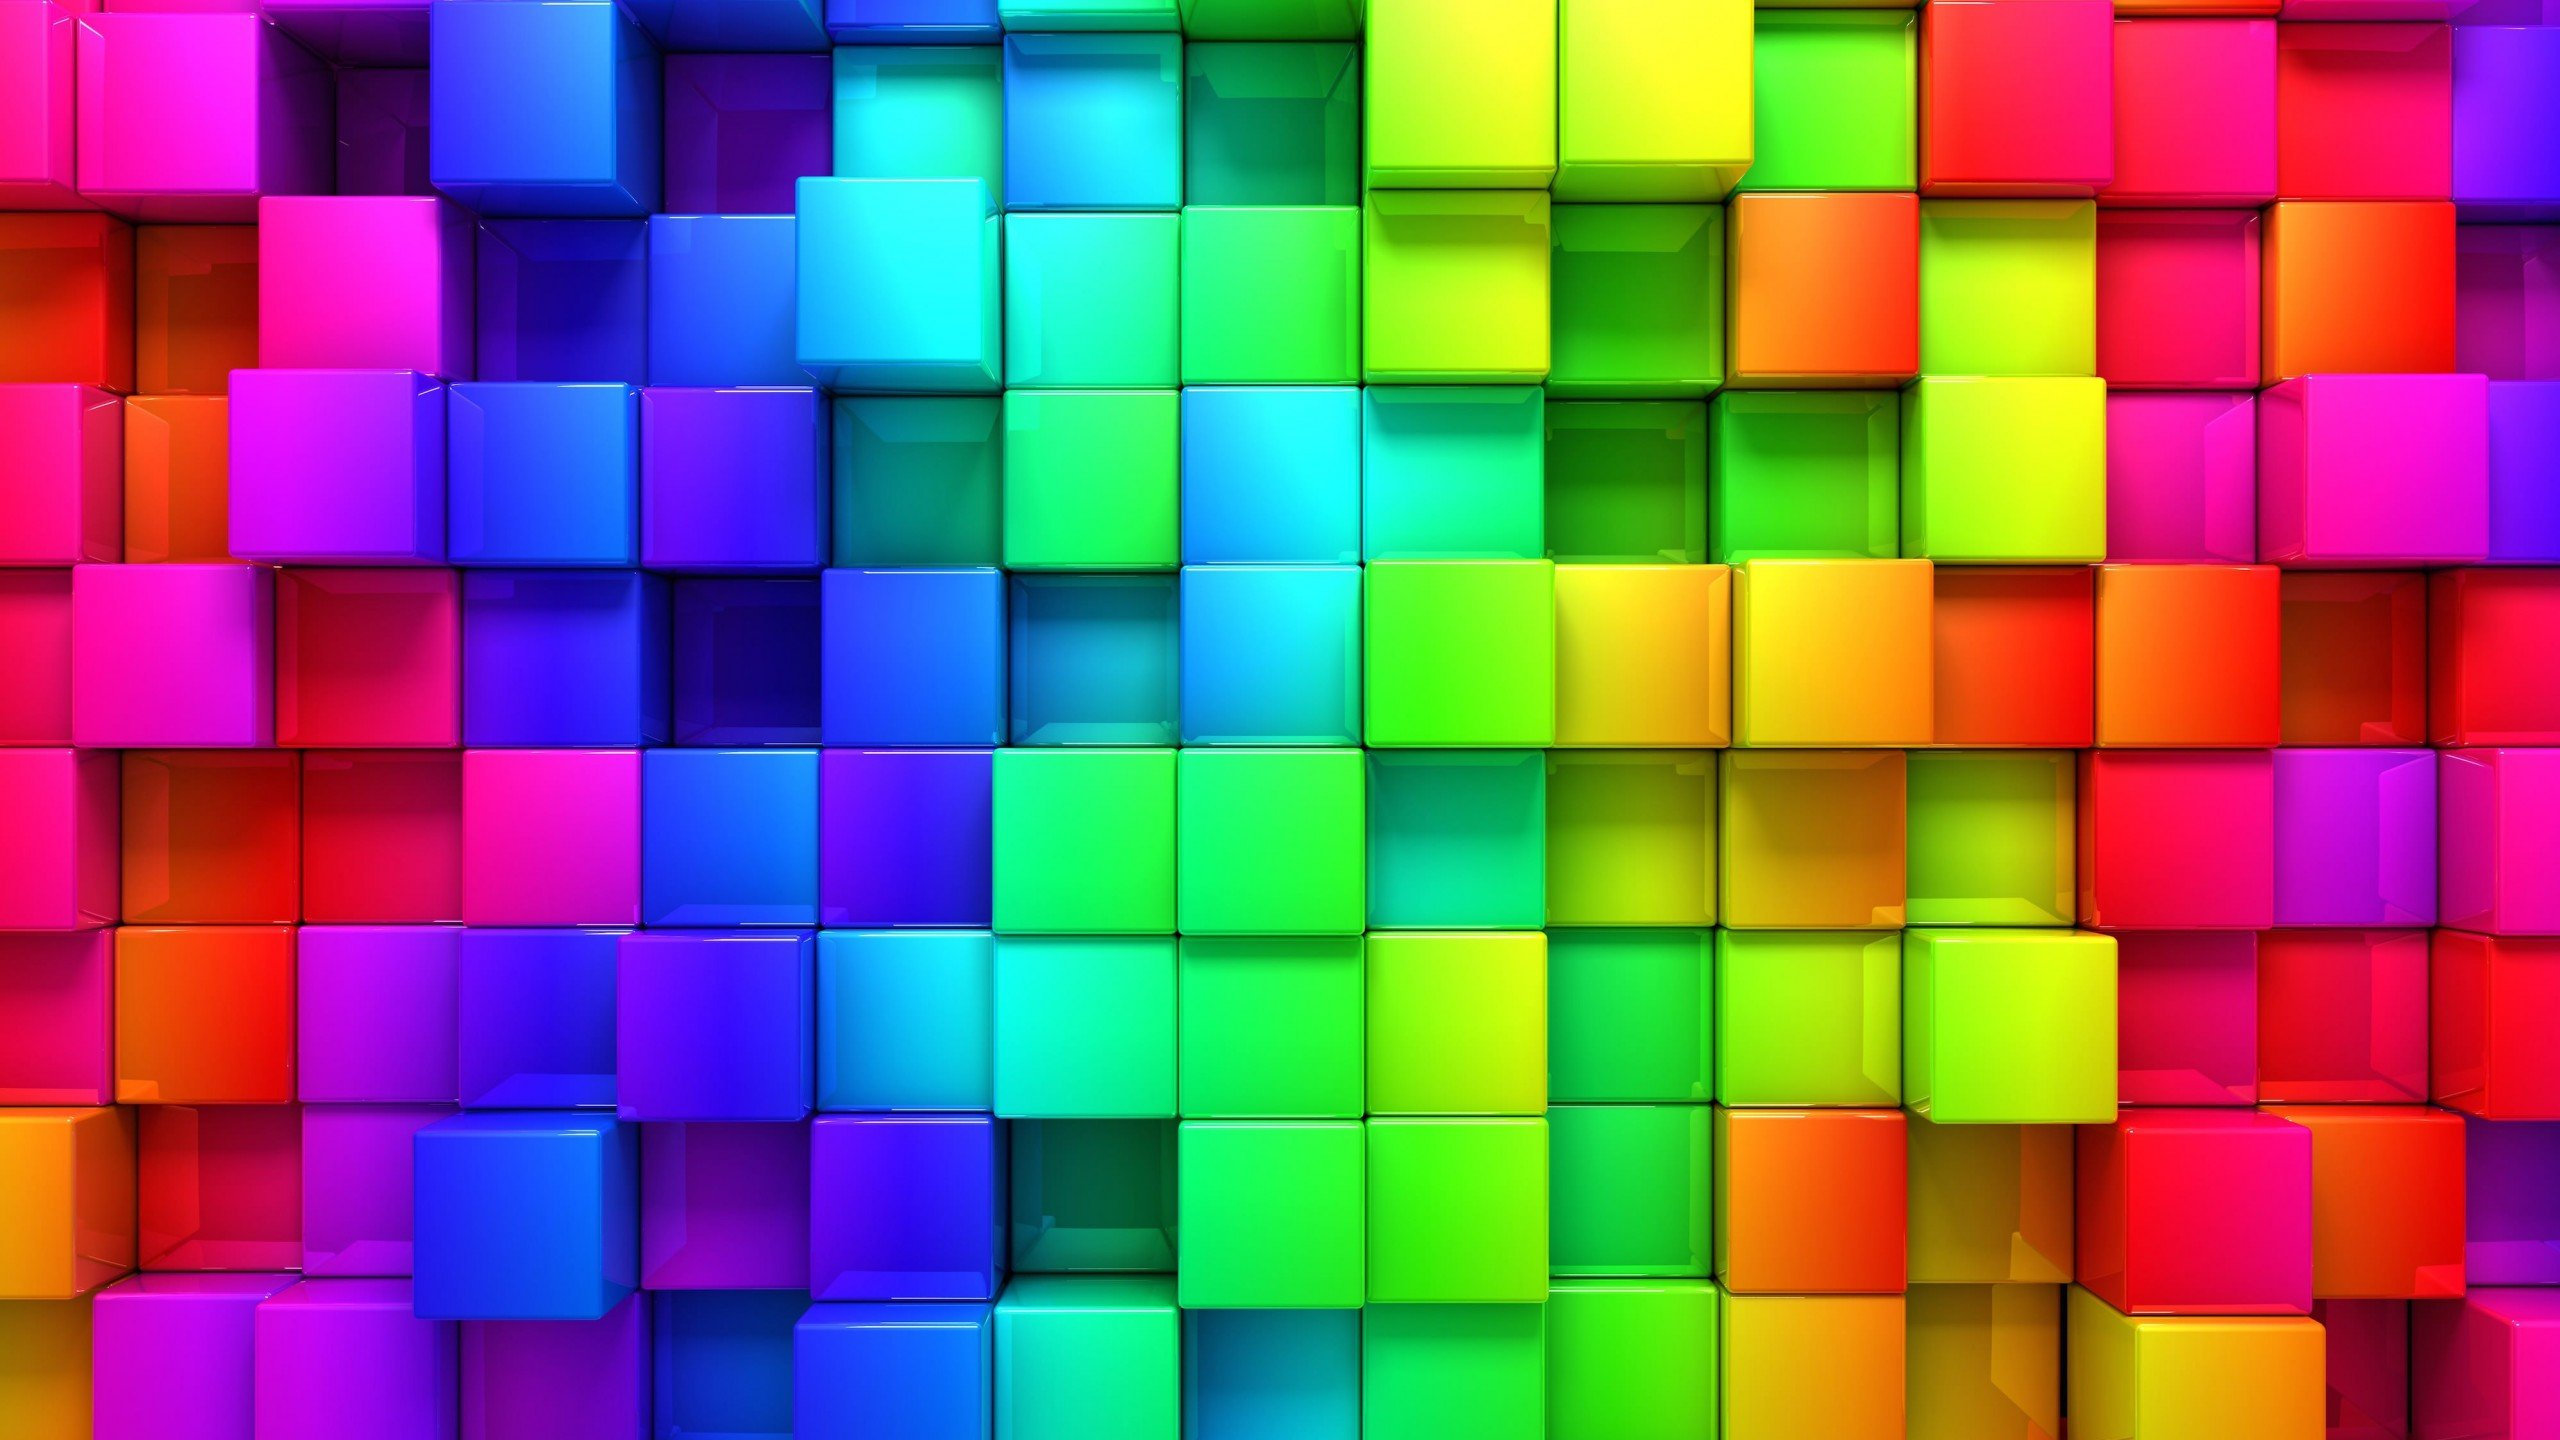 Download Cubic Rainbow HD wallpaper for 2560 x 1440   HDwallpapersnet 2560x1440